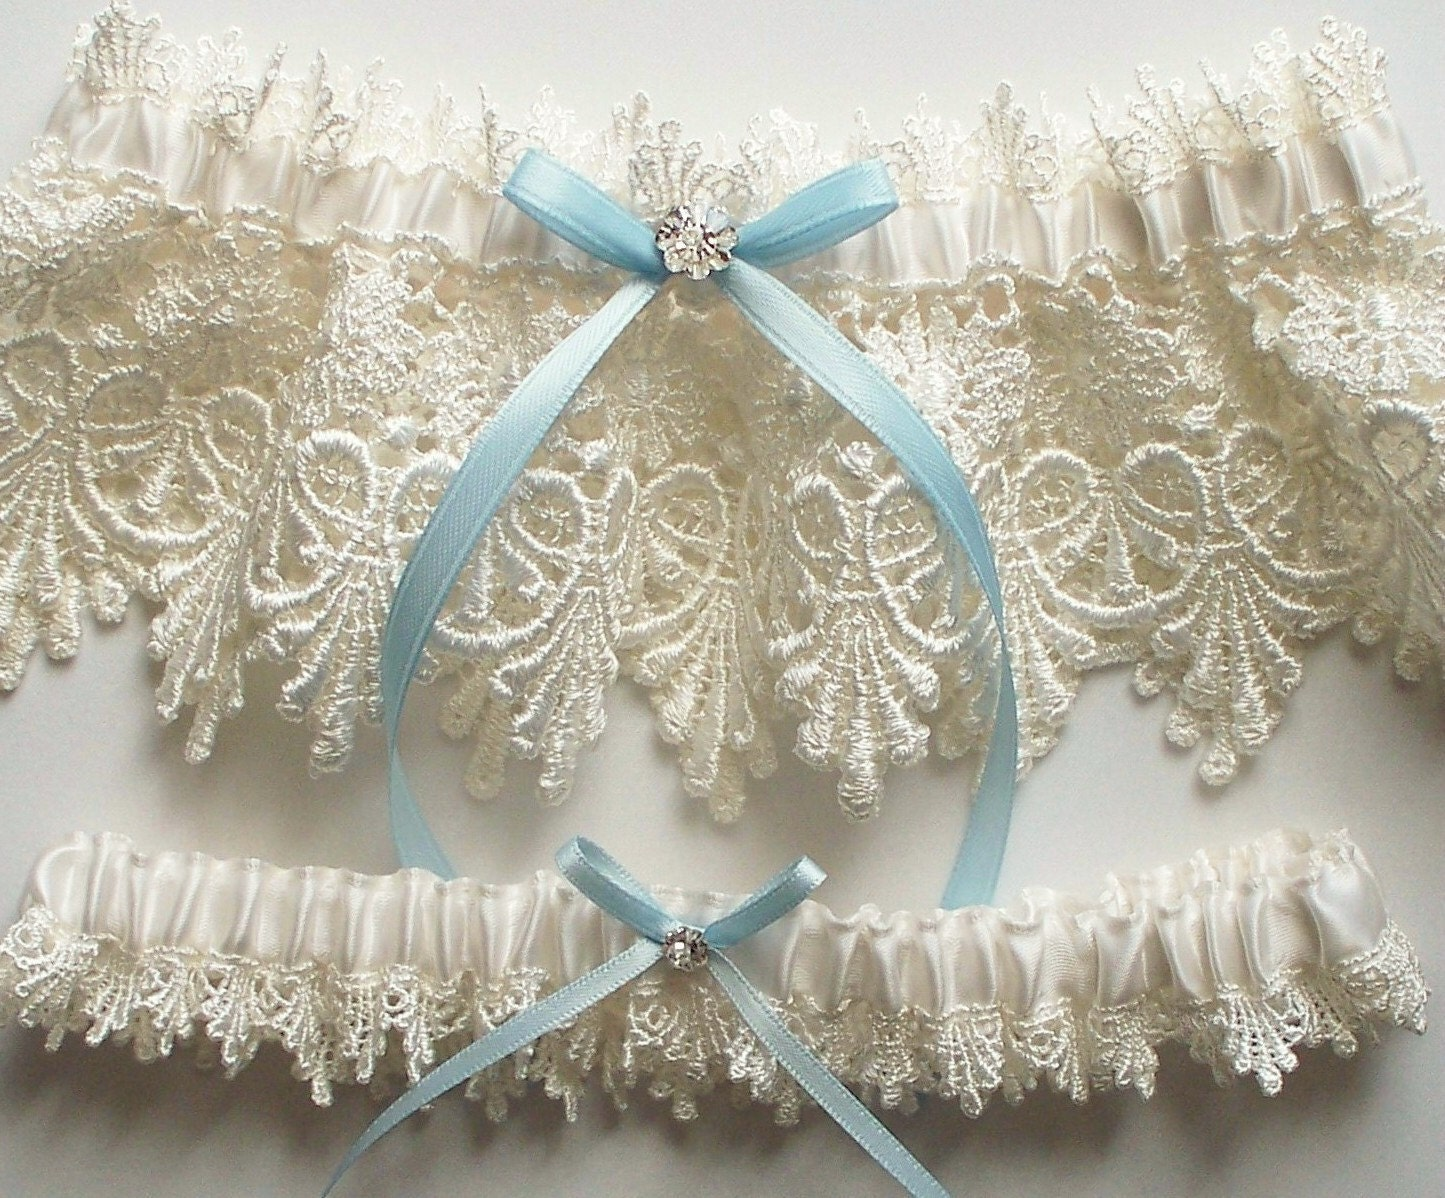 Lace Garter Wedding Garter Set with Blue Satin Ribbon Bow and